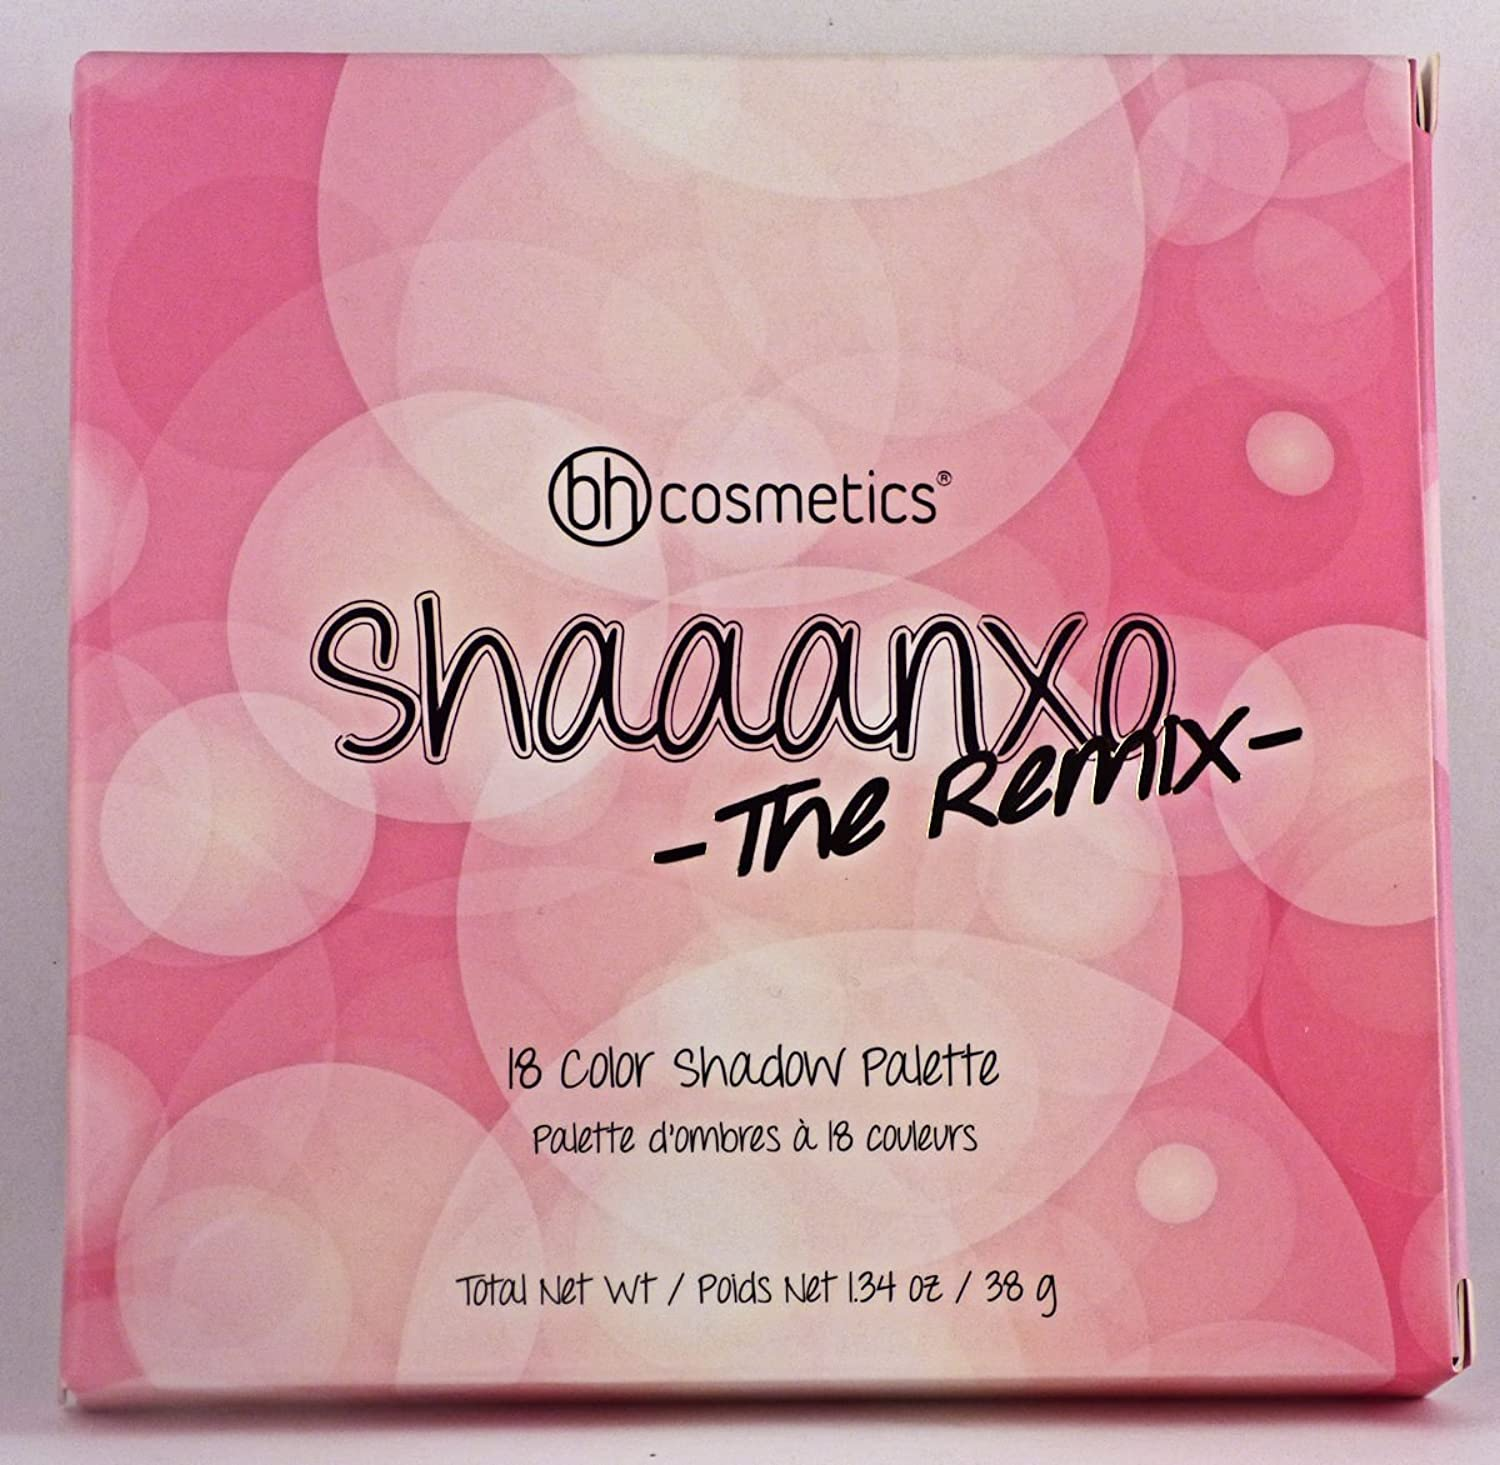 bhcosmetics shaaanxo the remix リップ18色パレット